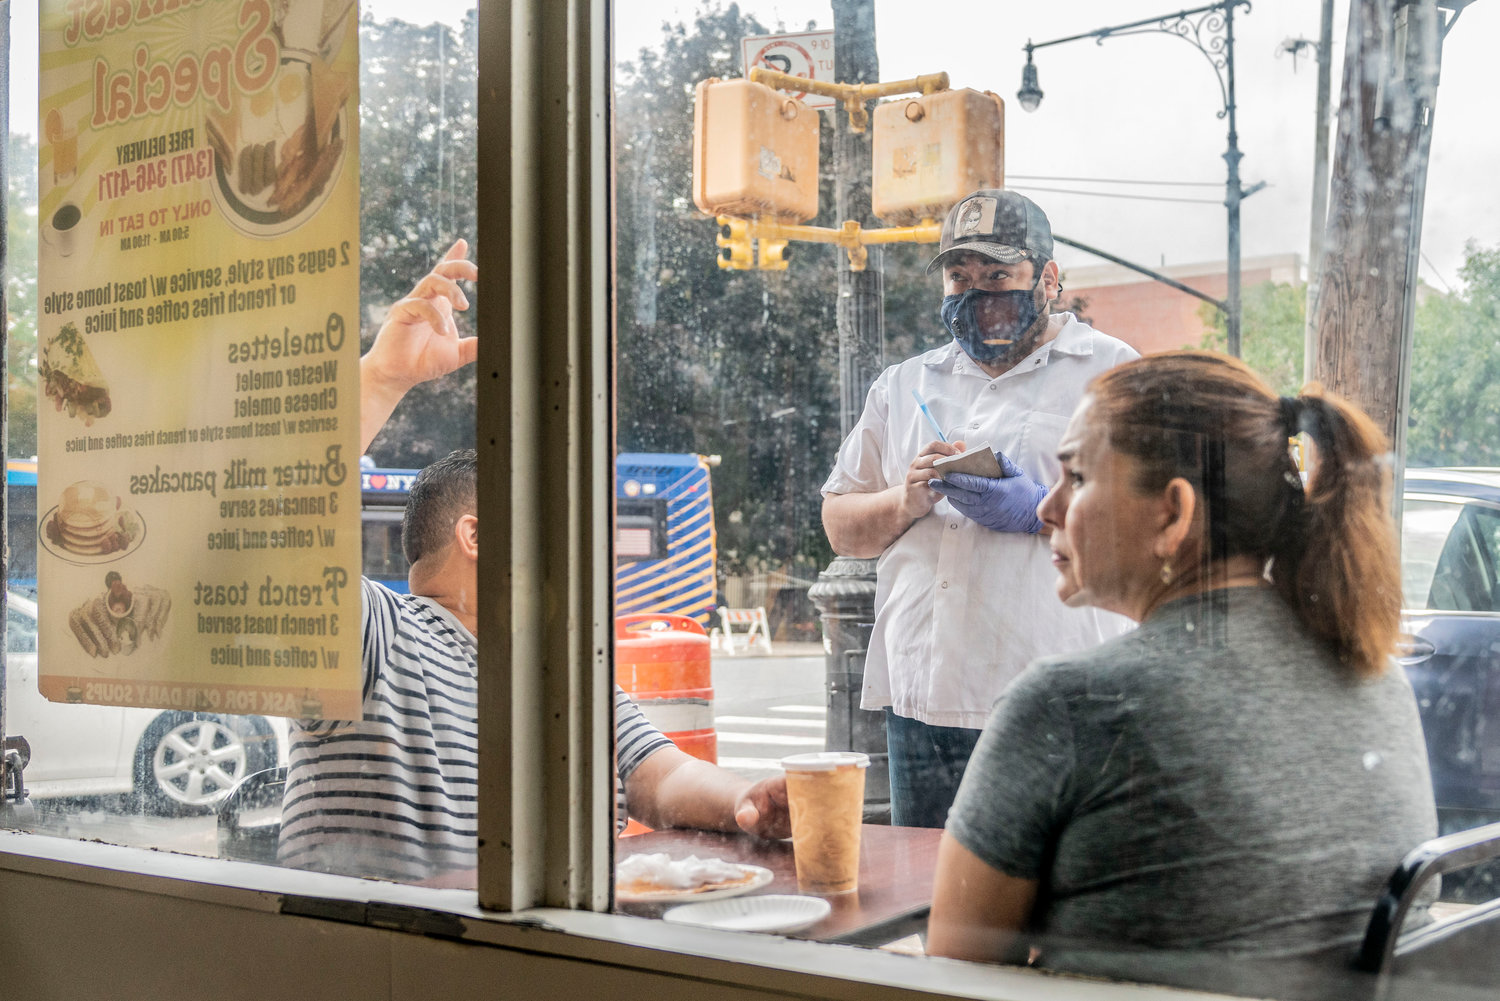 Outdoor dining hasn't been enough to save the Kingsbridge Donut Shop, and even opening up inside, their small space just won't generate enough revenue to keep the doors open, owner Fernando Rodríguez said. After 20 years in business, the shop is expected to close for good later this month.